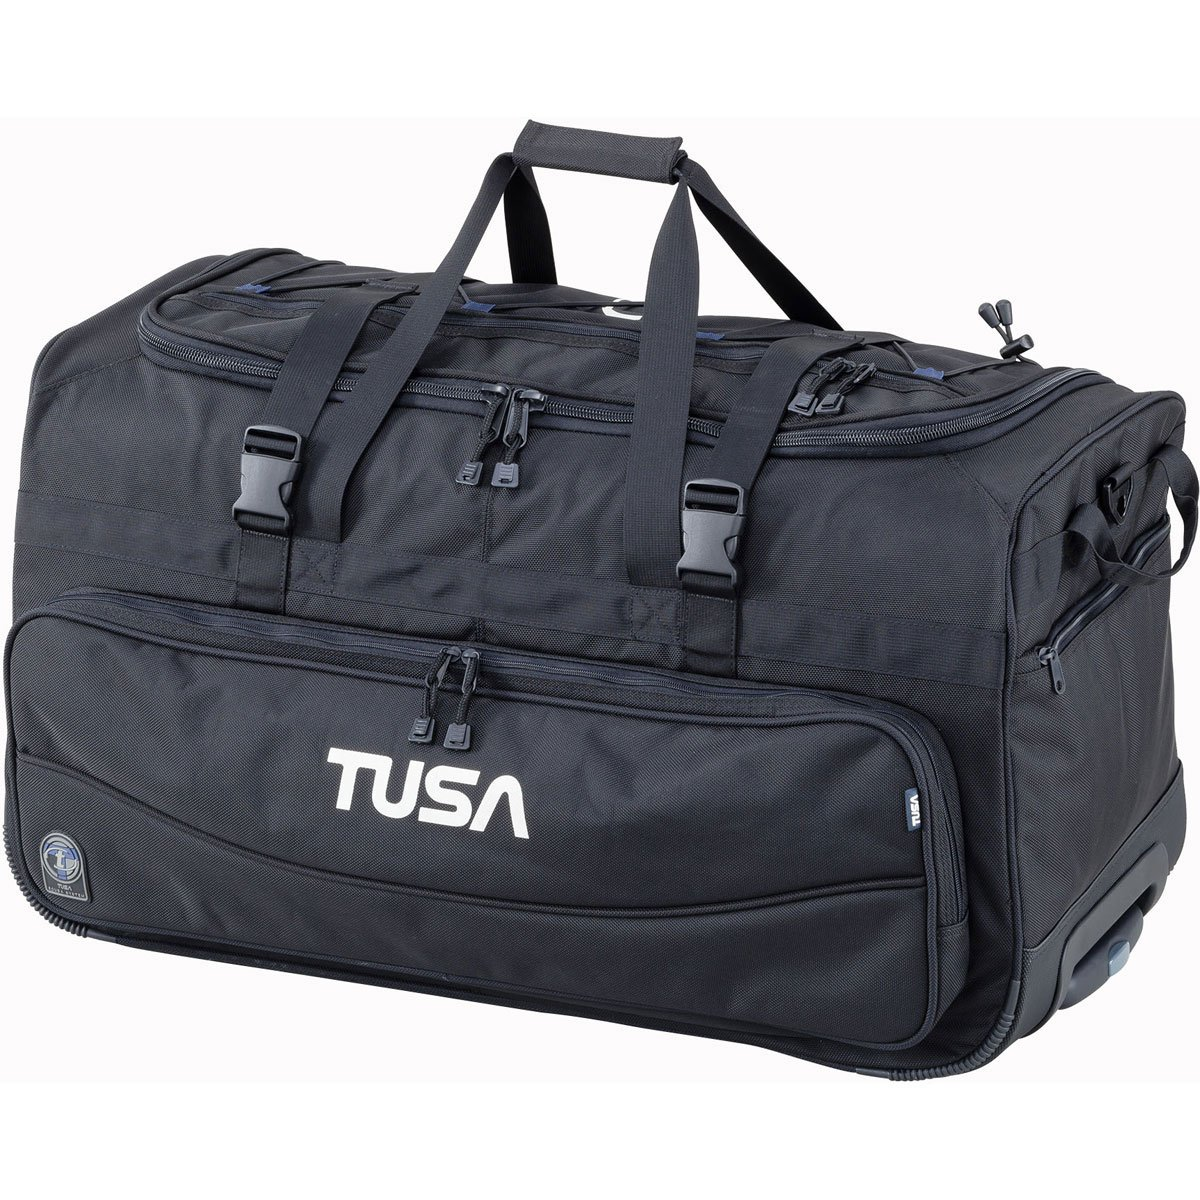 TUSA - Dive Gear Roller Duffle Bag in Black by TUSA